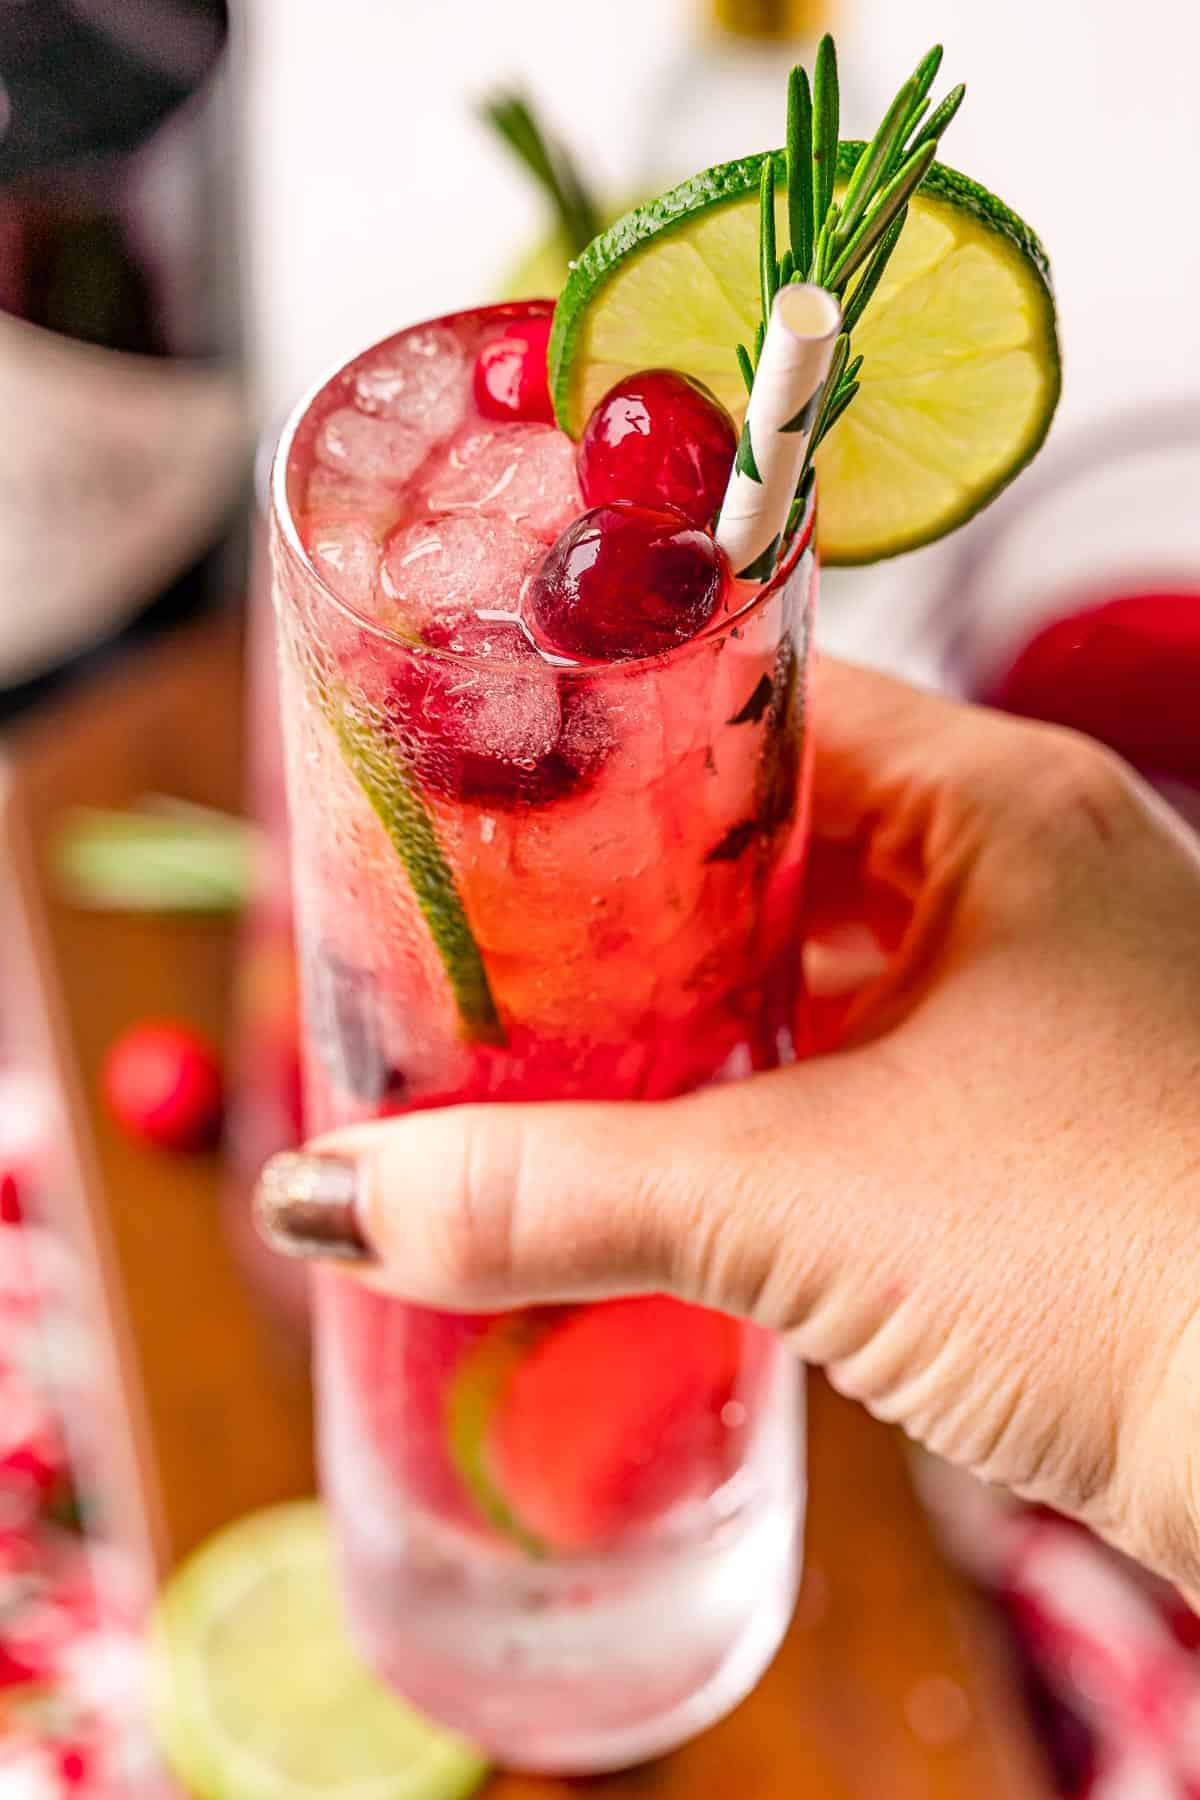 A hand holding a gin and tonic made with cranberries.